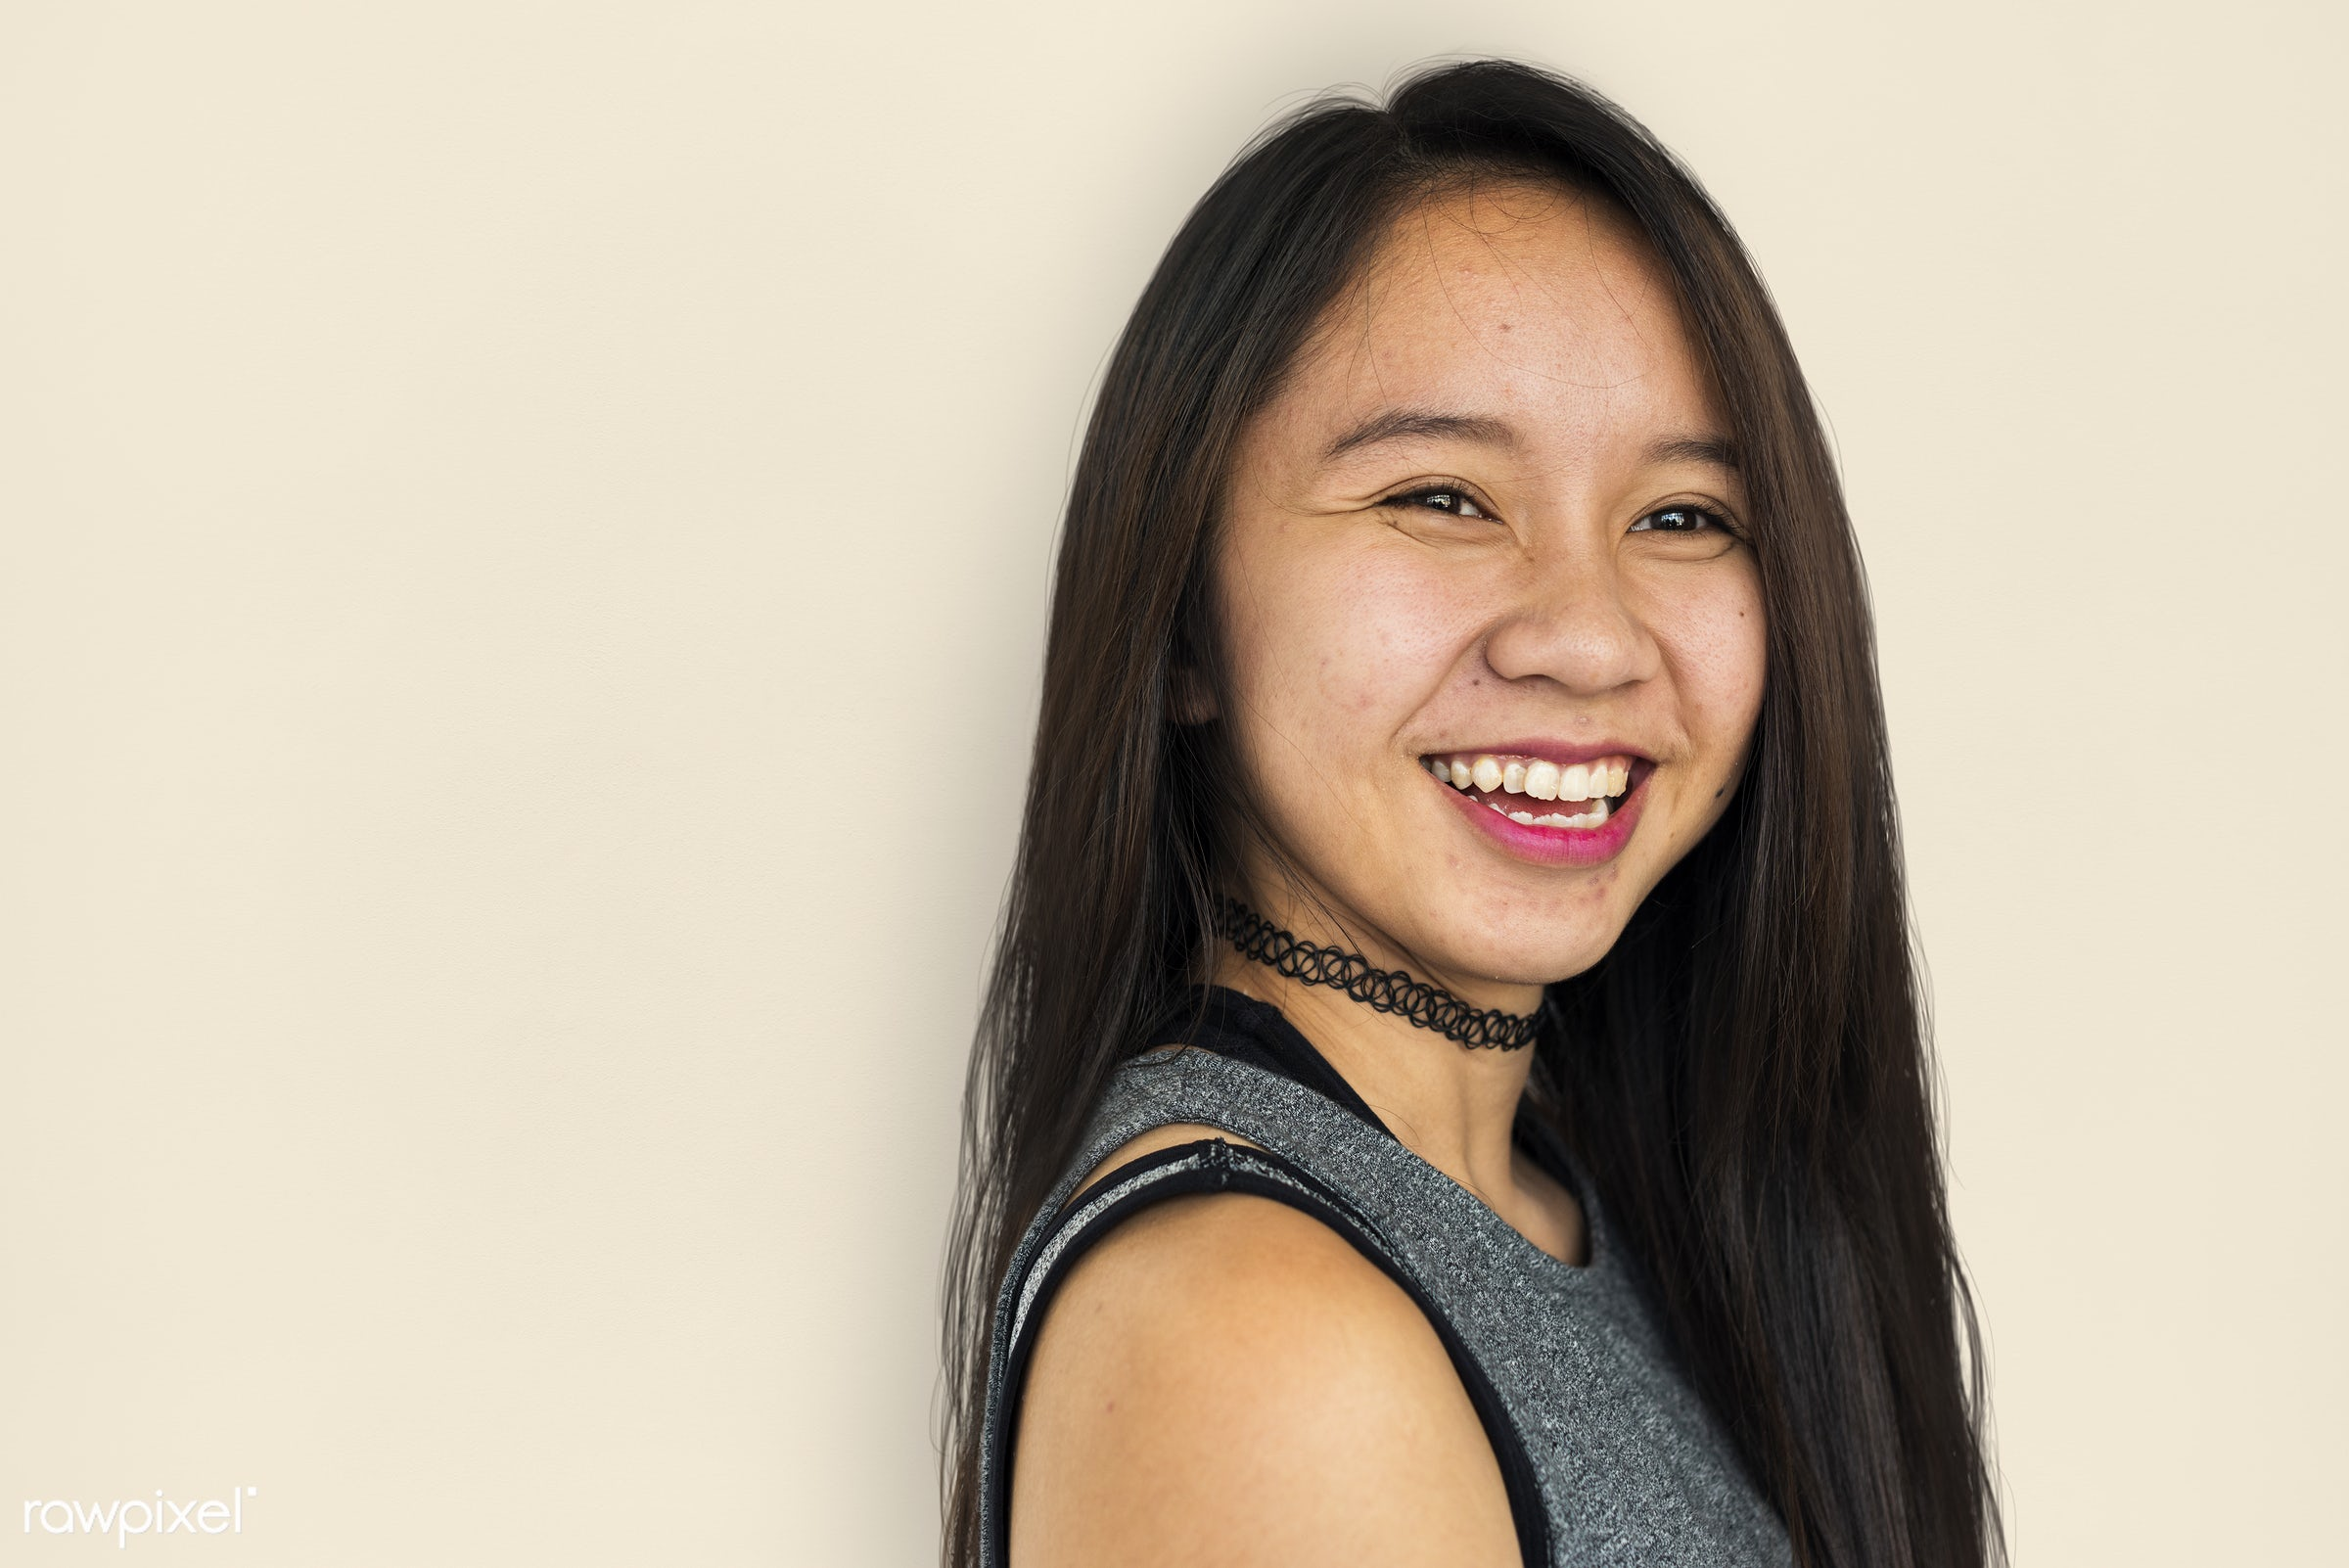 studio, expression, face, person, thai, people, asian, girl, joyous, happy, attractive, smile, cheerful, smiling, isolated,...